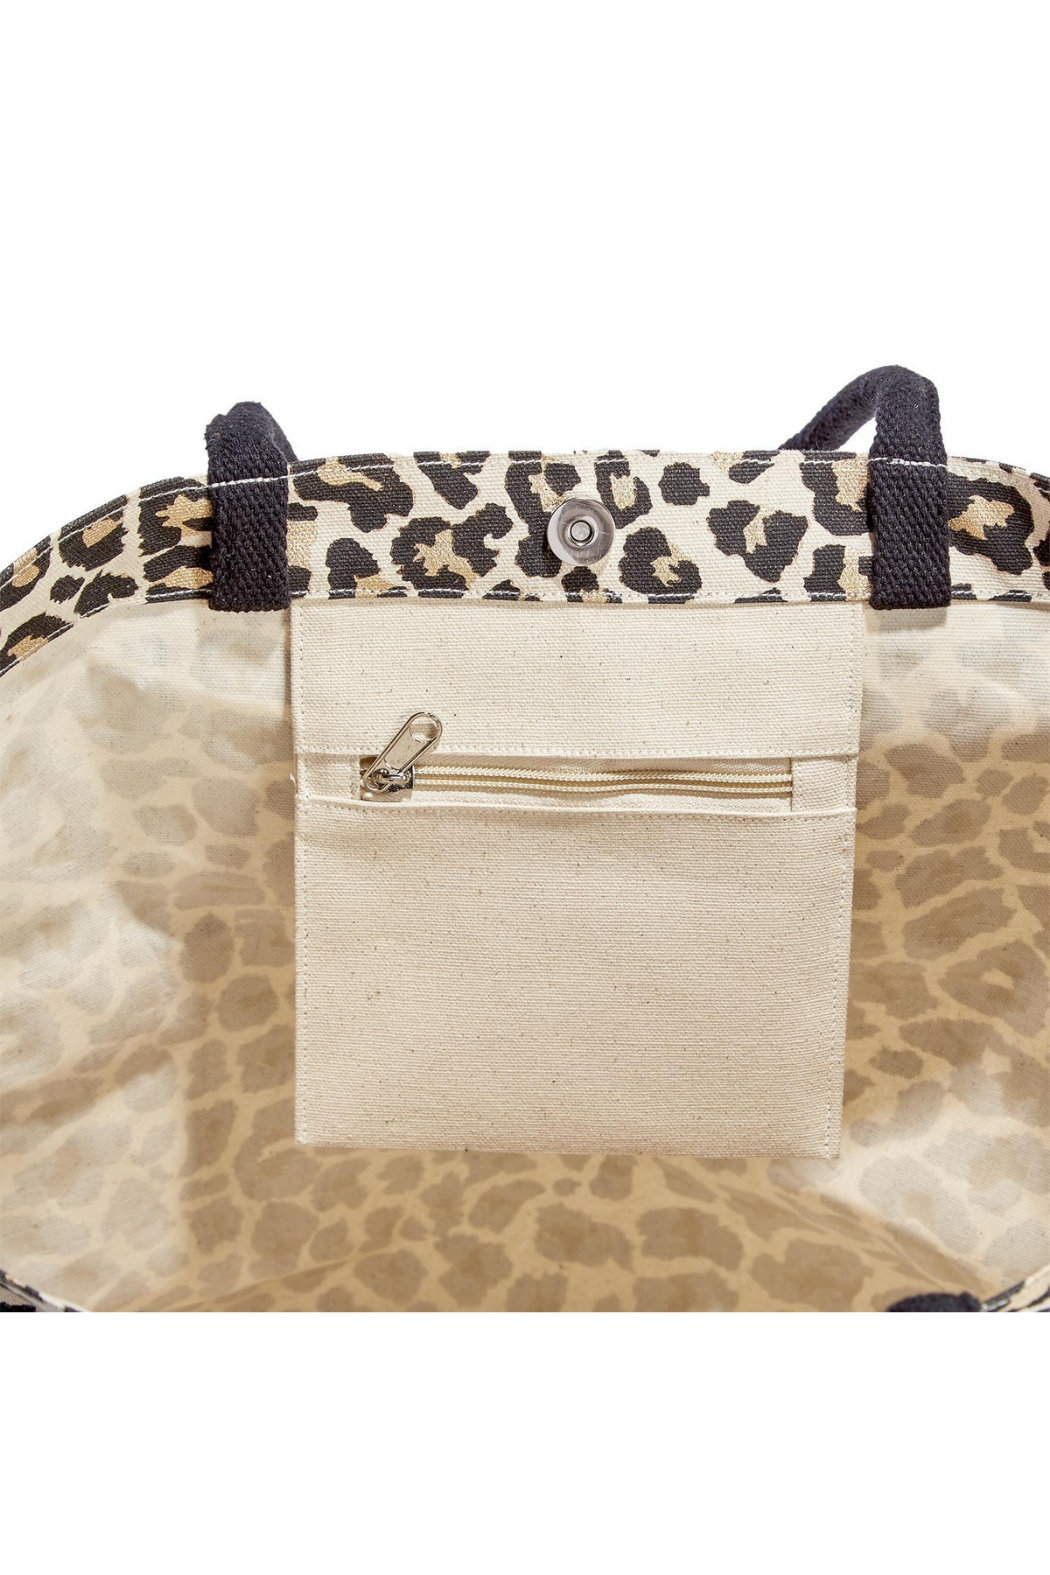 Two's Company Leopard Spot Metallic/Gold Foil Tote - Front Full Image